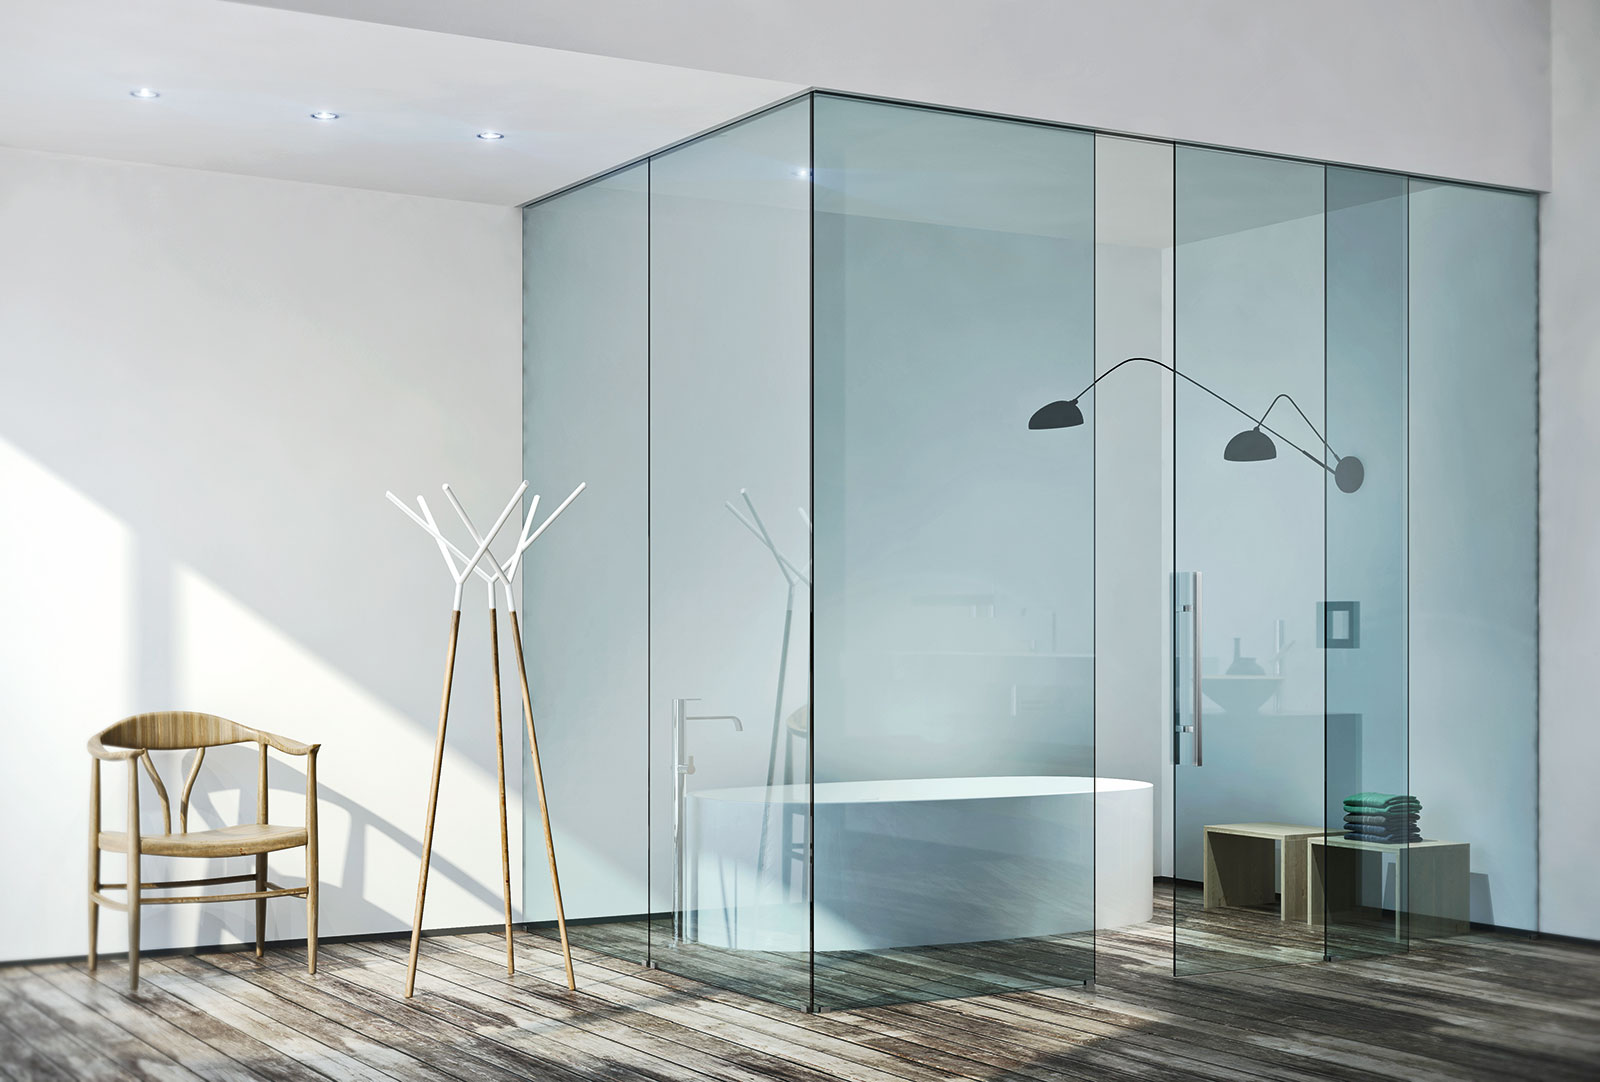 Sistemi di porte in vetro e combinate henry glass for Glass wall door systems